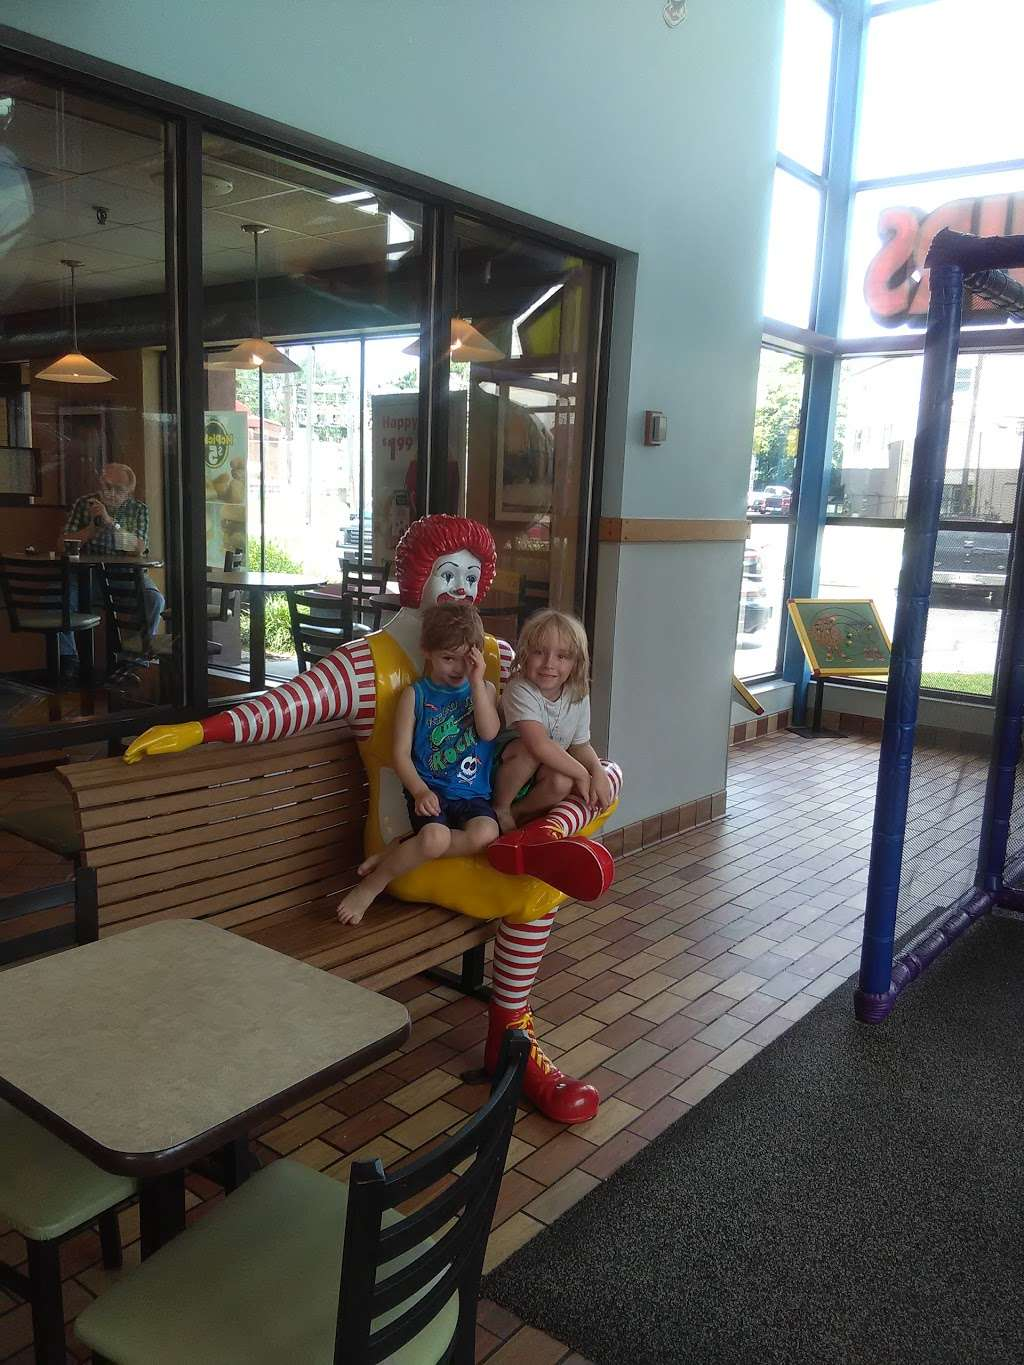 McDonalds - cafe  | Photo 2 of 10 | Address: 3021 Southeastern Ave, Indianapolis, IN 46203, USA | Phone: (317) 631-3484